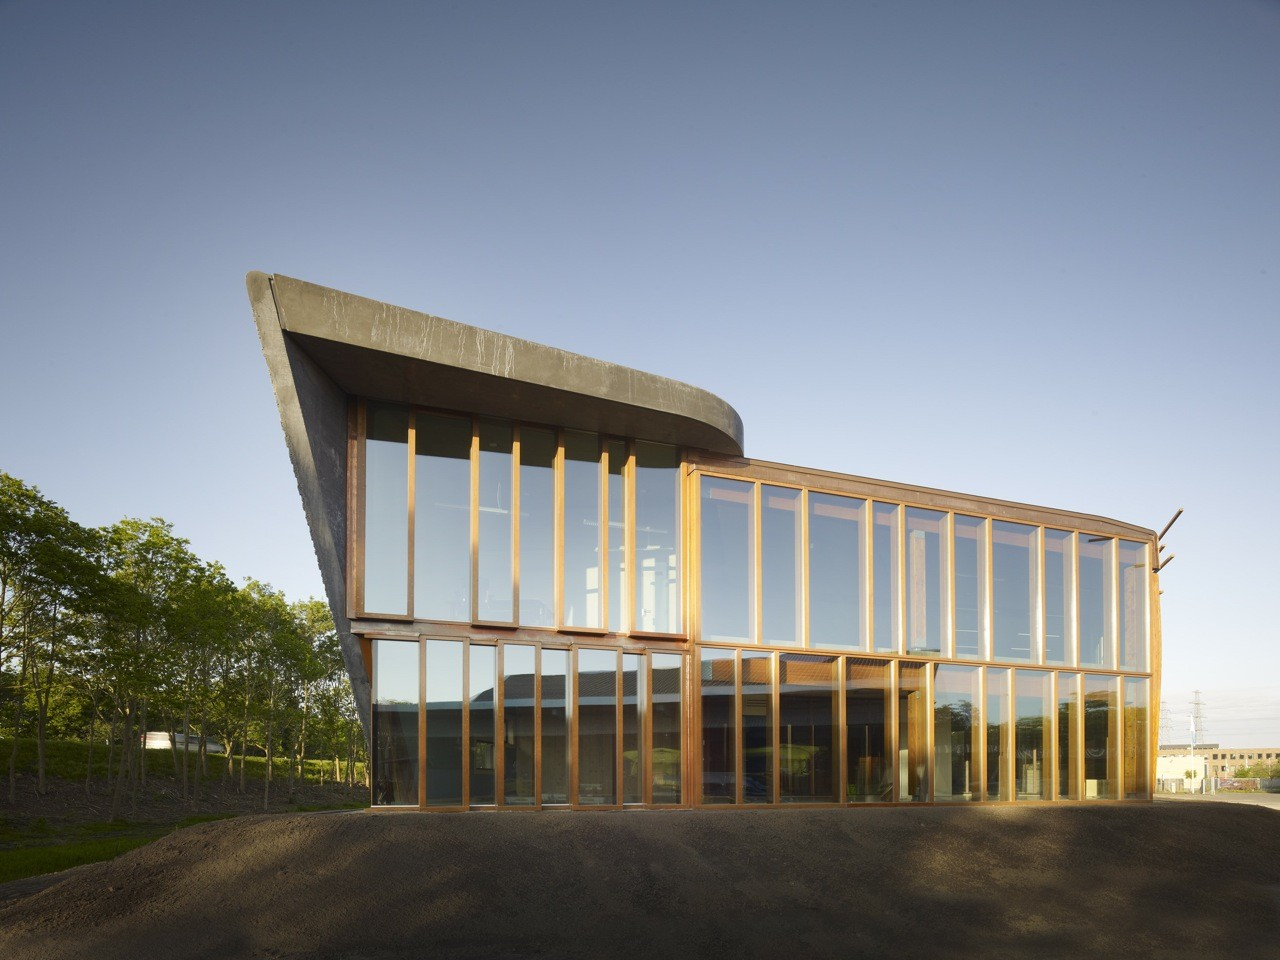 Rijkswaterstaat Head Office / 24H Architecture, © Christian Richters